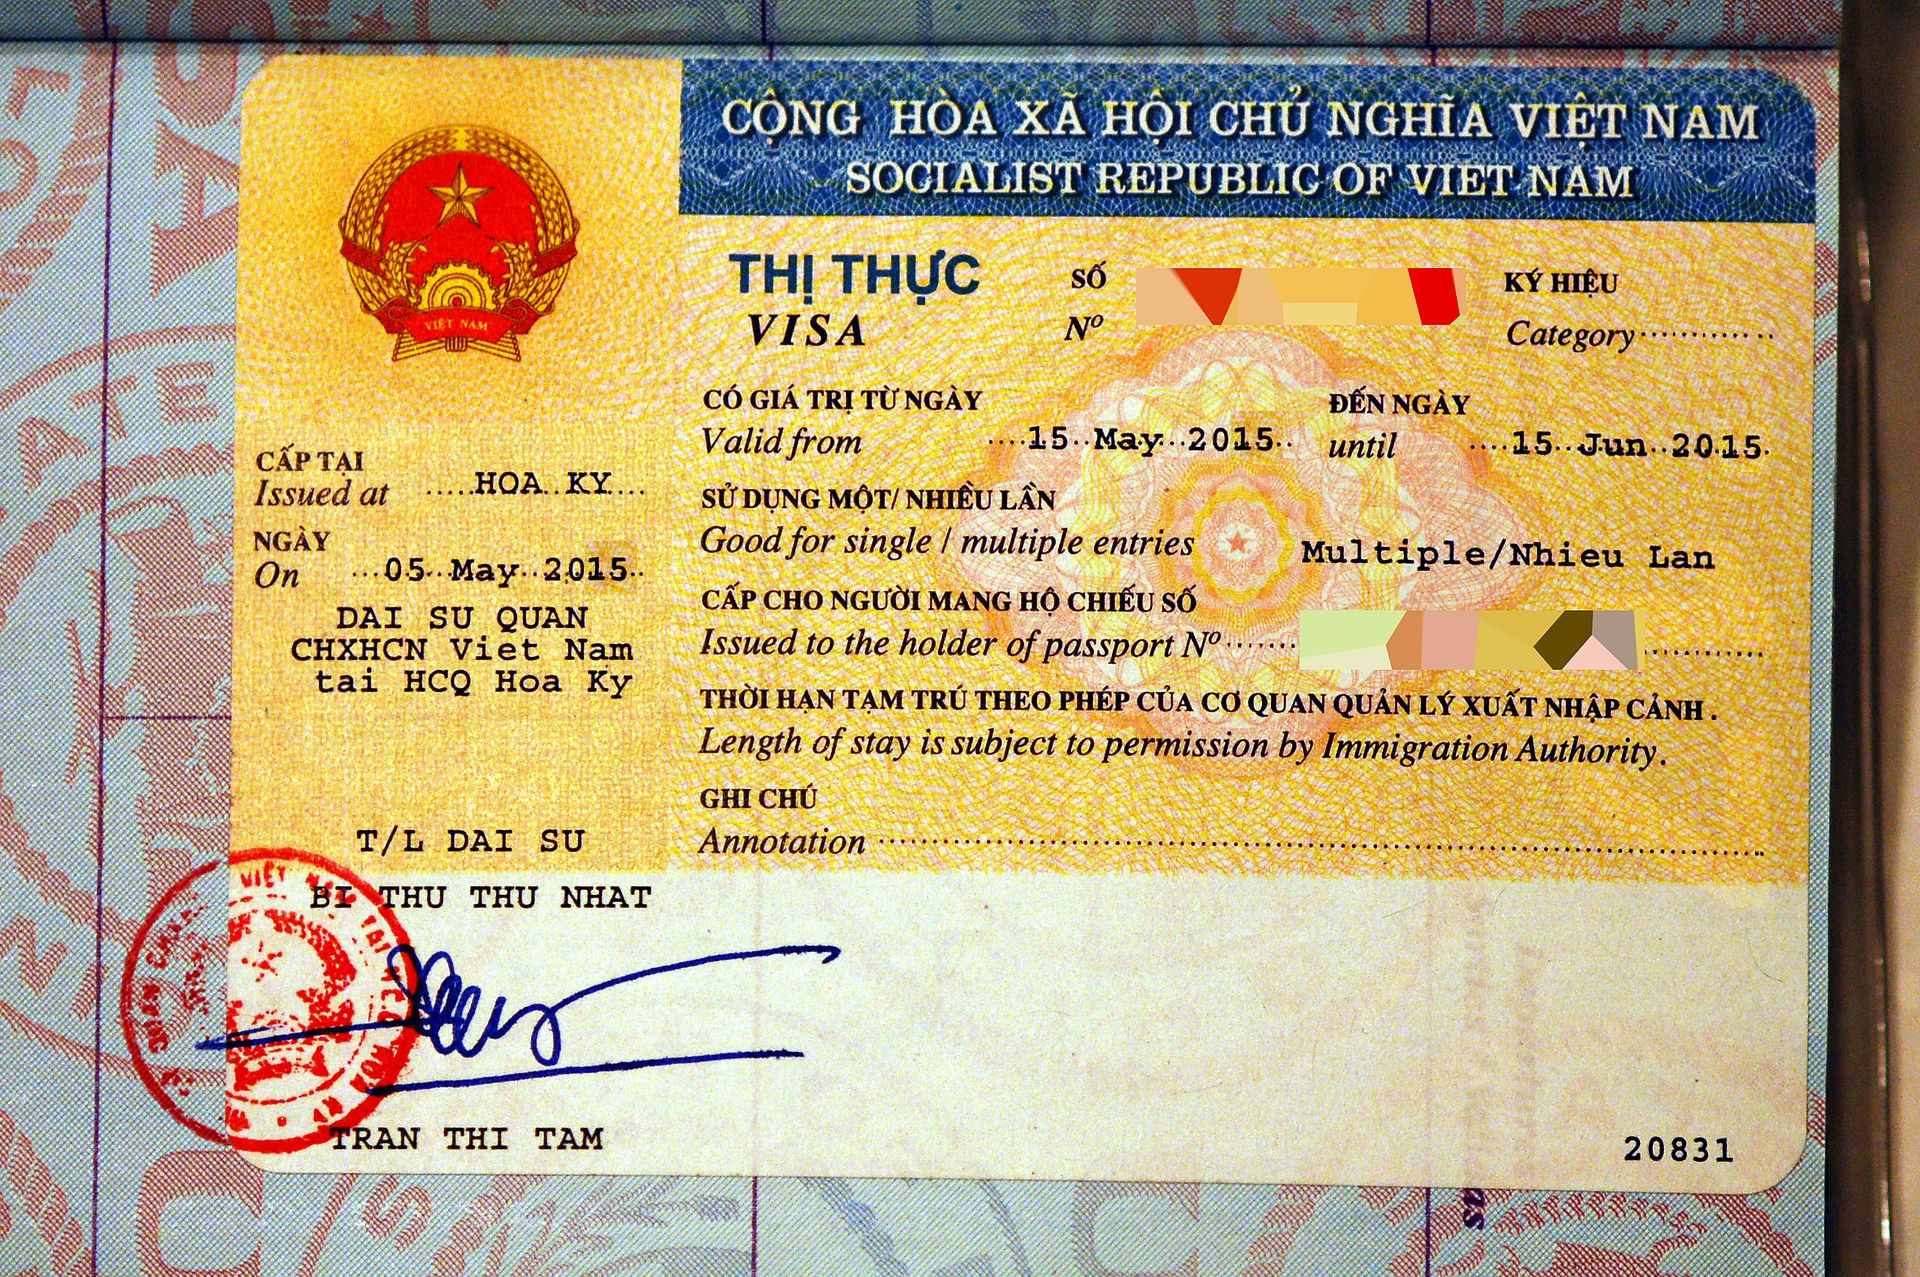 Visa policy of Vietnam